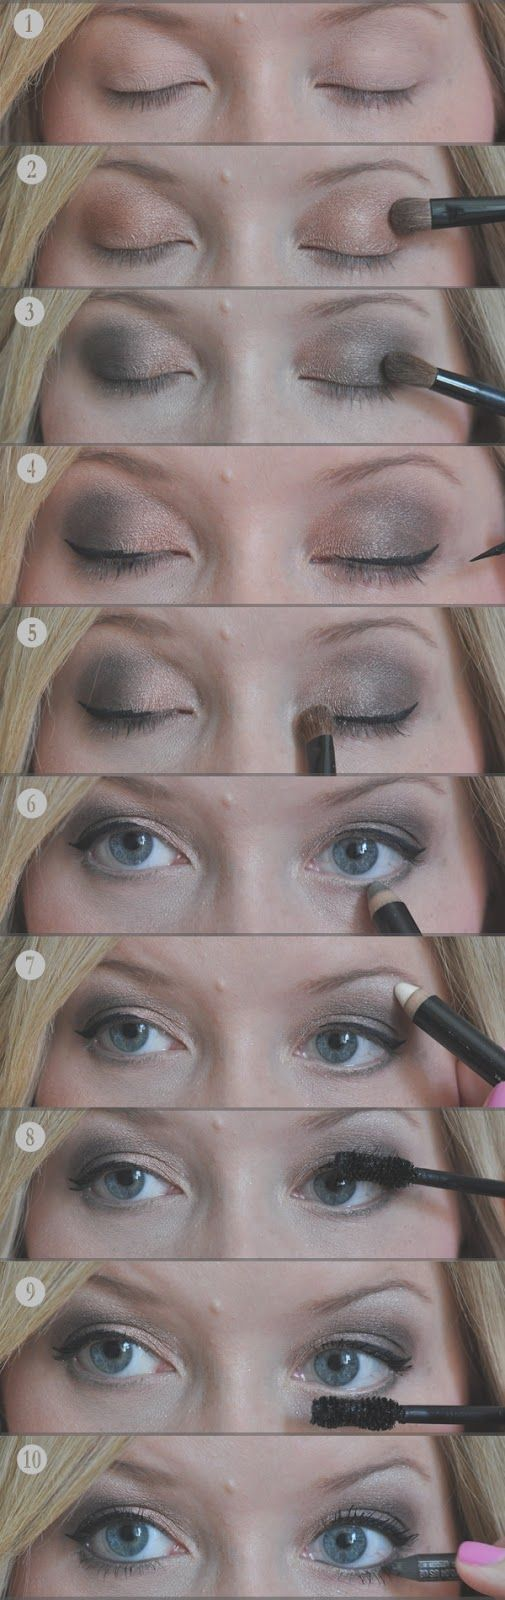 Kate's from The Small Things Blog: smokey eye guide, it's all about the gel eyeliner slightly winged out - i need to master this!